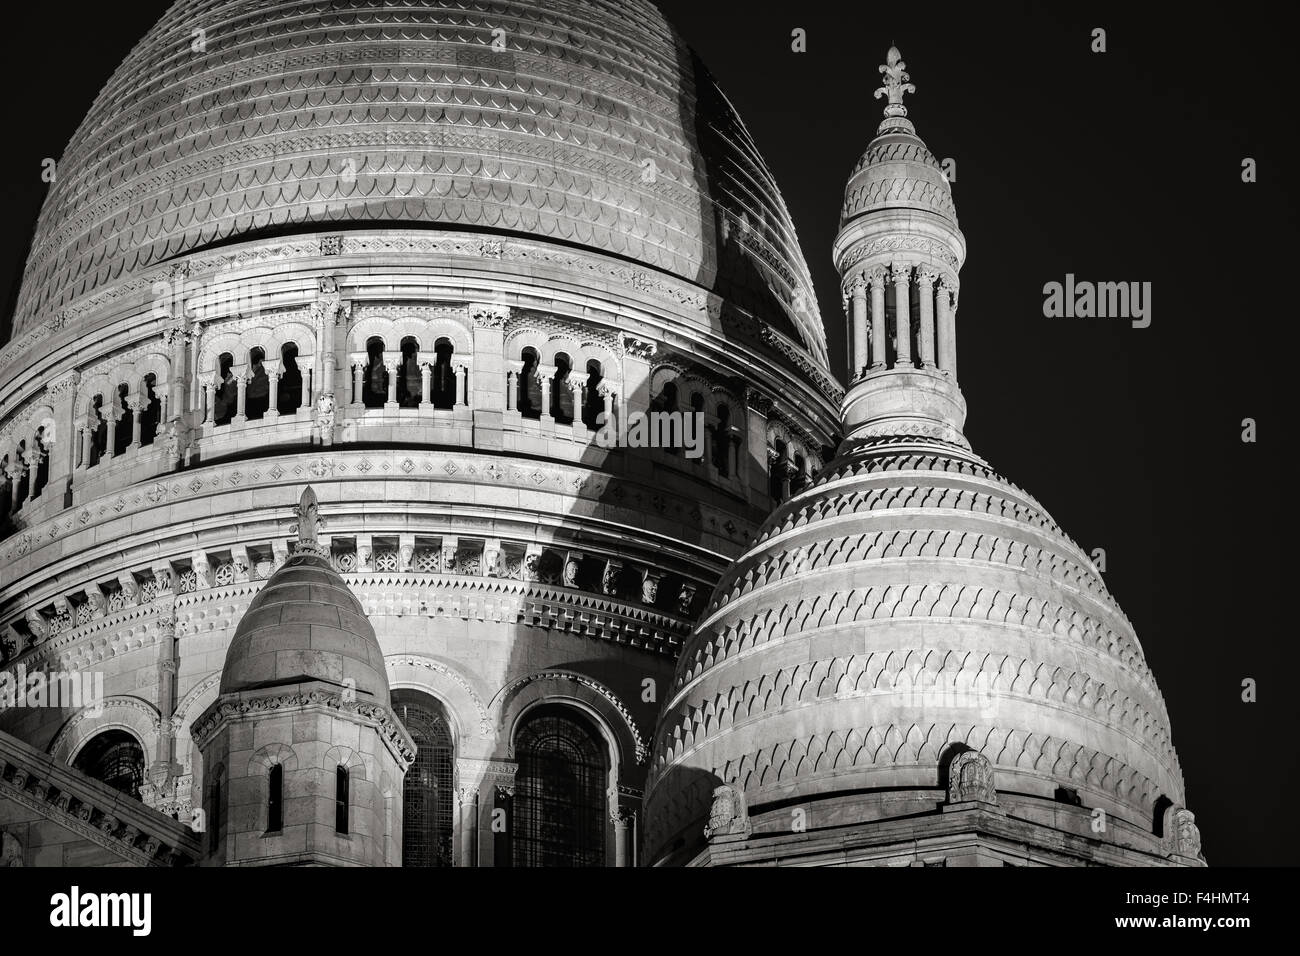 Detail of the Domes of Sacré Coeur Basilica (Basilica of the Sacred Heart) at night, Montmartre, 18th, Paris, - Stock Image